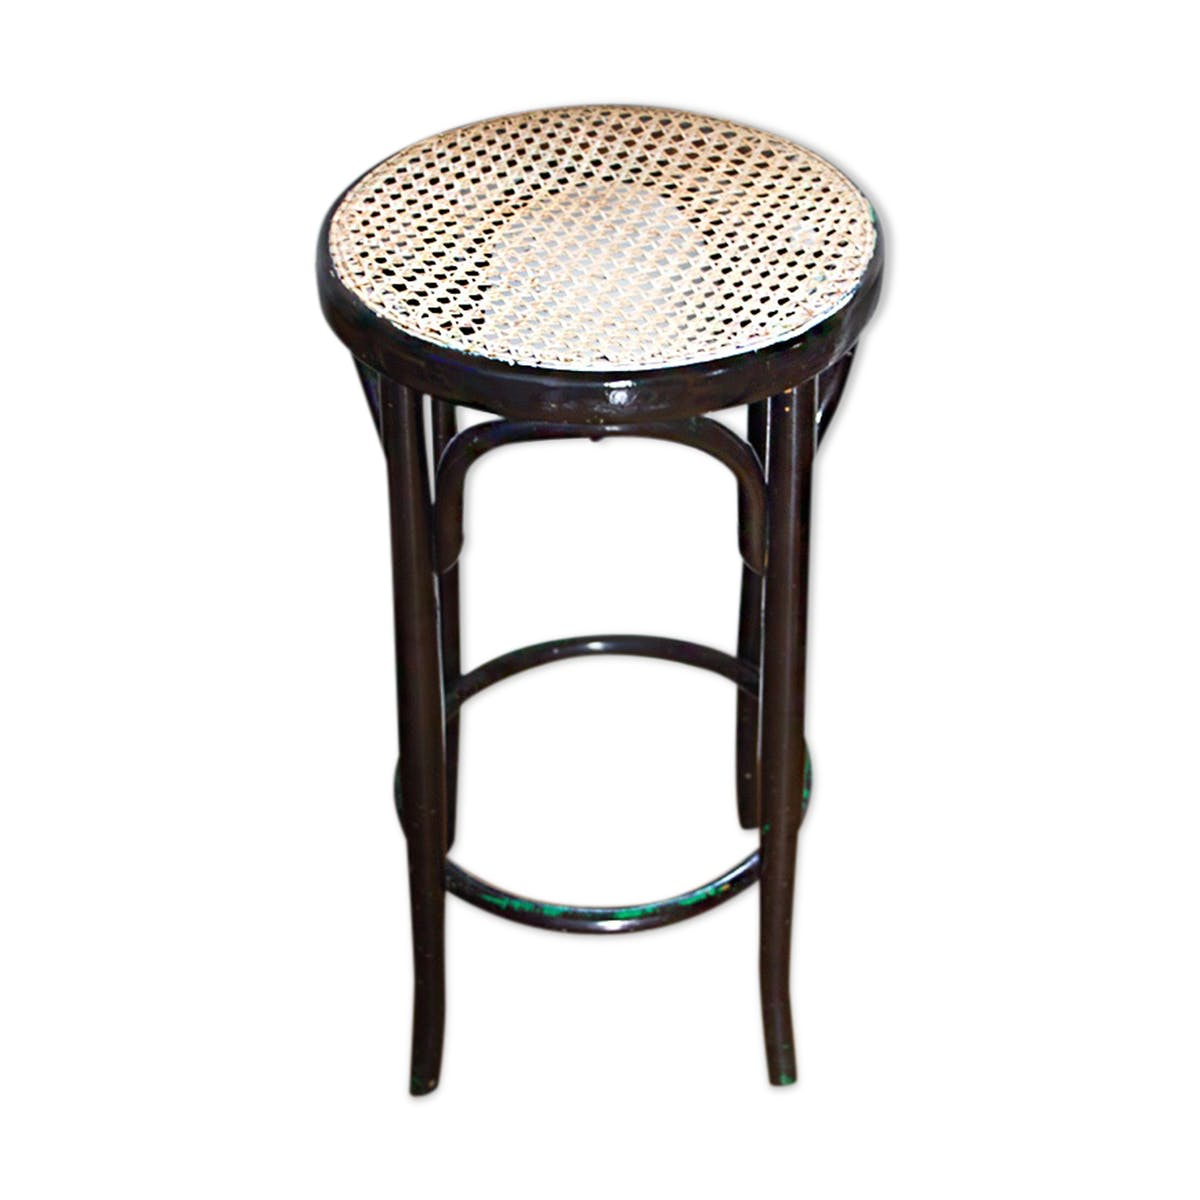 tabouret de bar original tabouret design bois amazing tabouret design original en bois ercolino. Black Bedroom Furniture Sets. Home Design Ideas